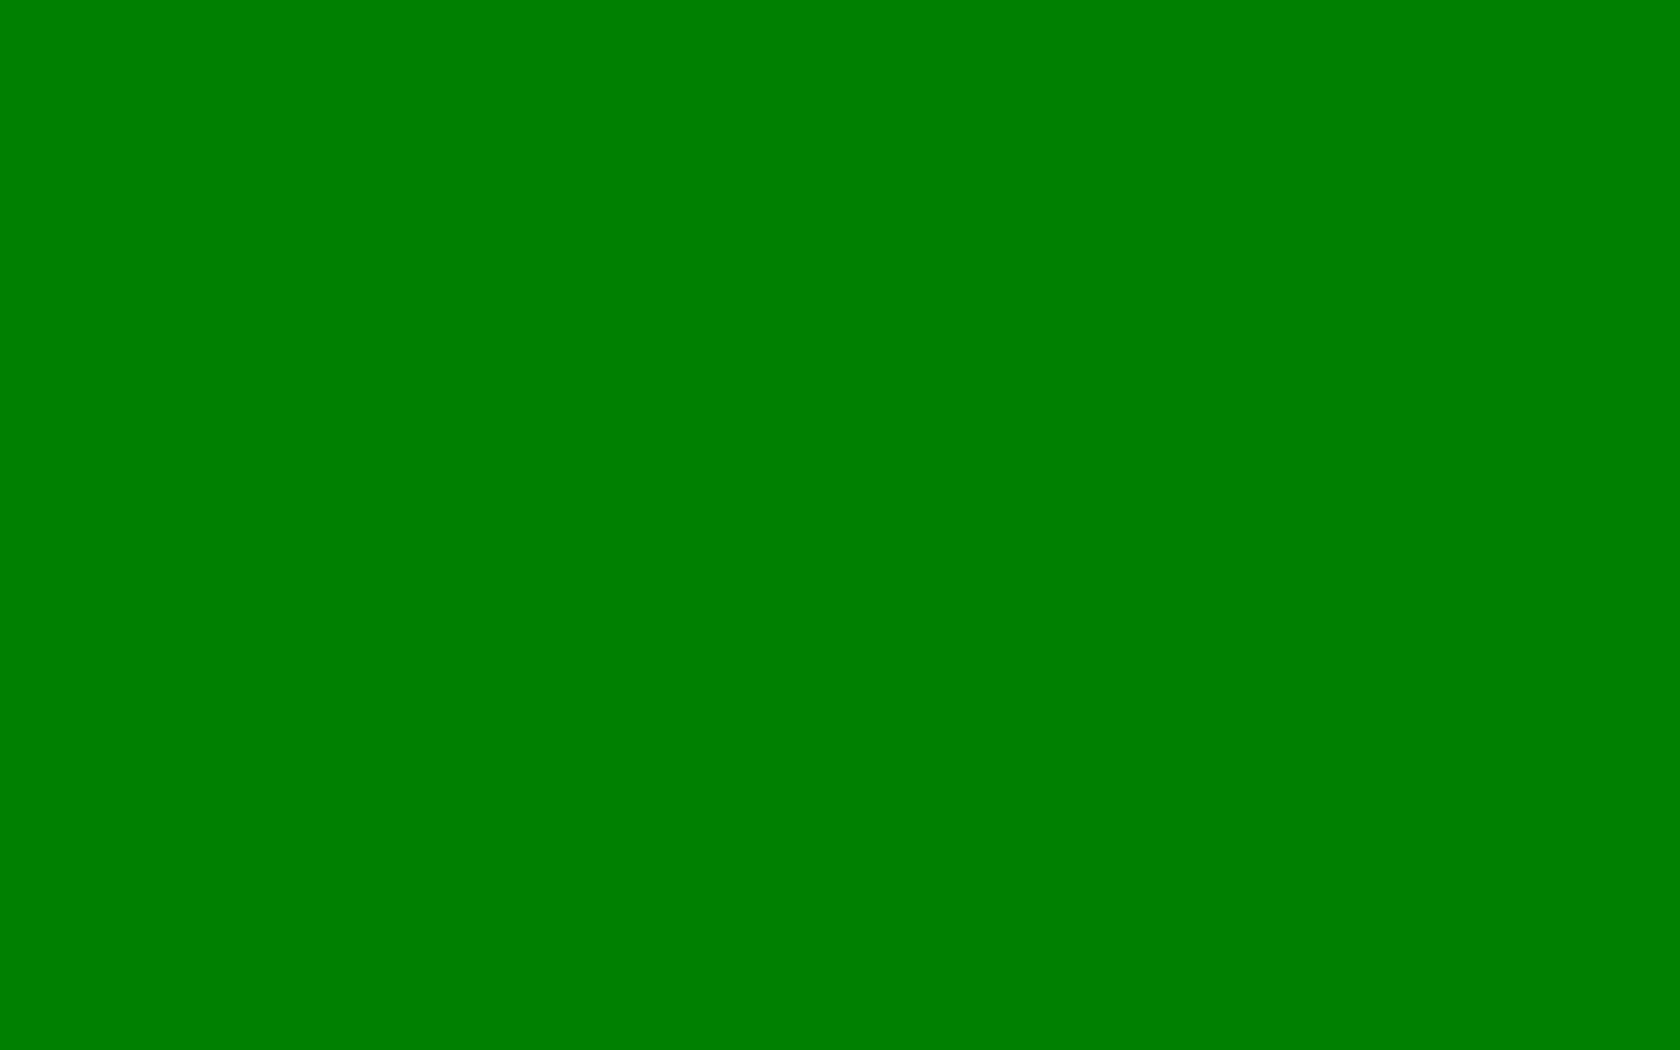 1680x1050 Office Green Solid Color Background